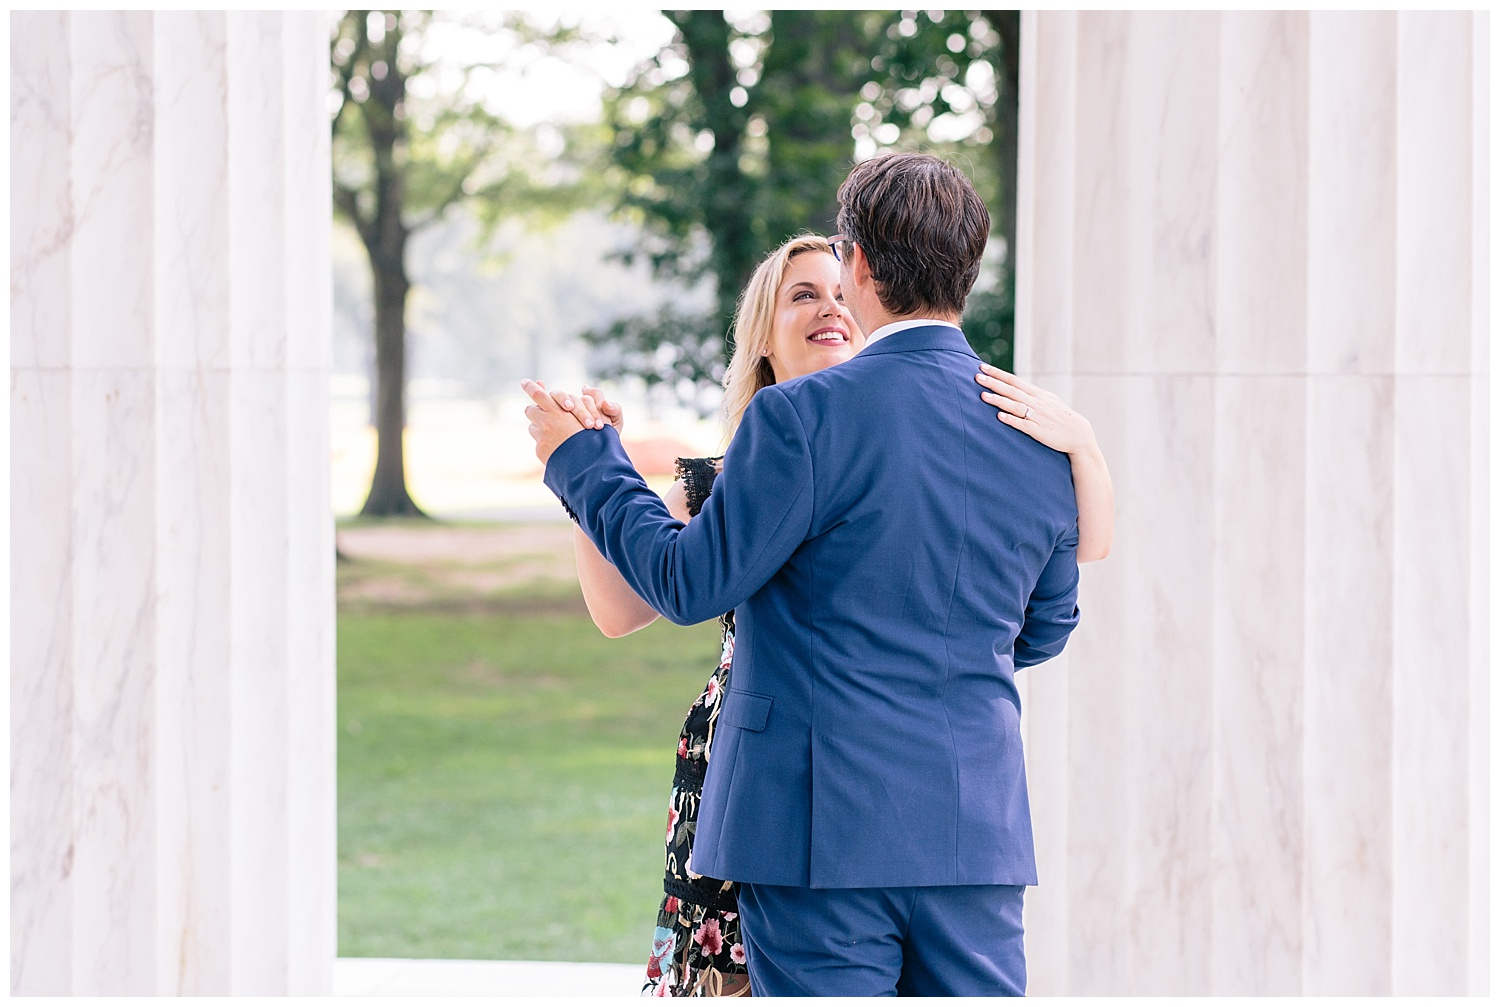 emily-belson-photography-washington-dc-engagement-emily-john-10.jpg